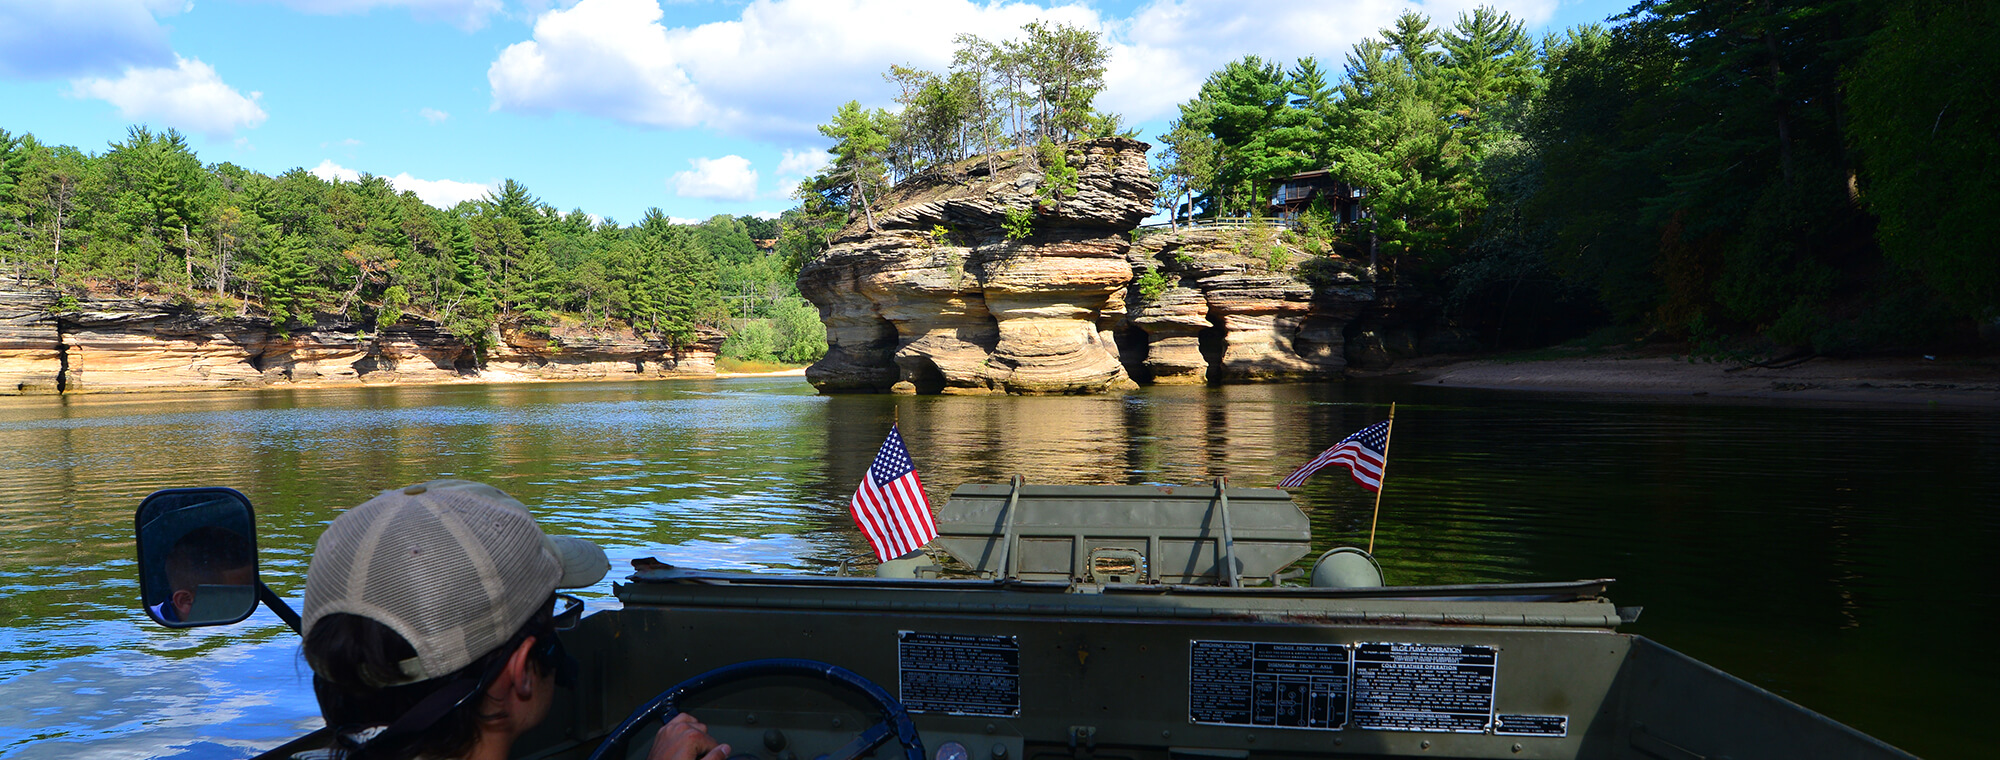 Wisconsin Dells Boat And Duck Tours Dells Army Ducks